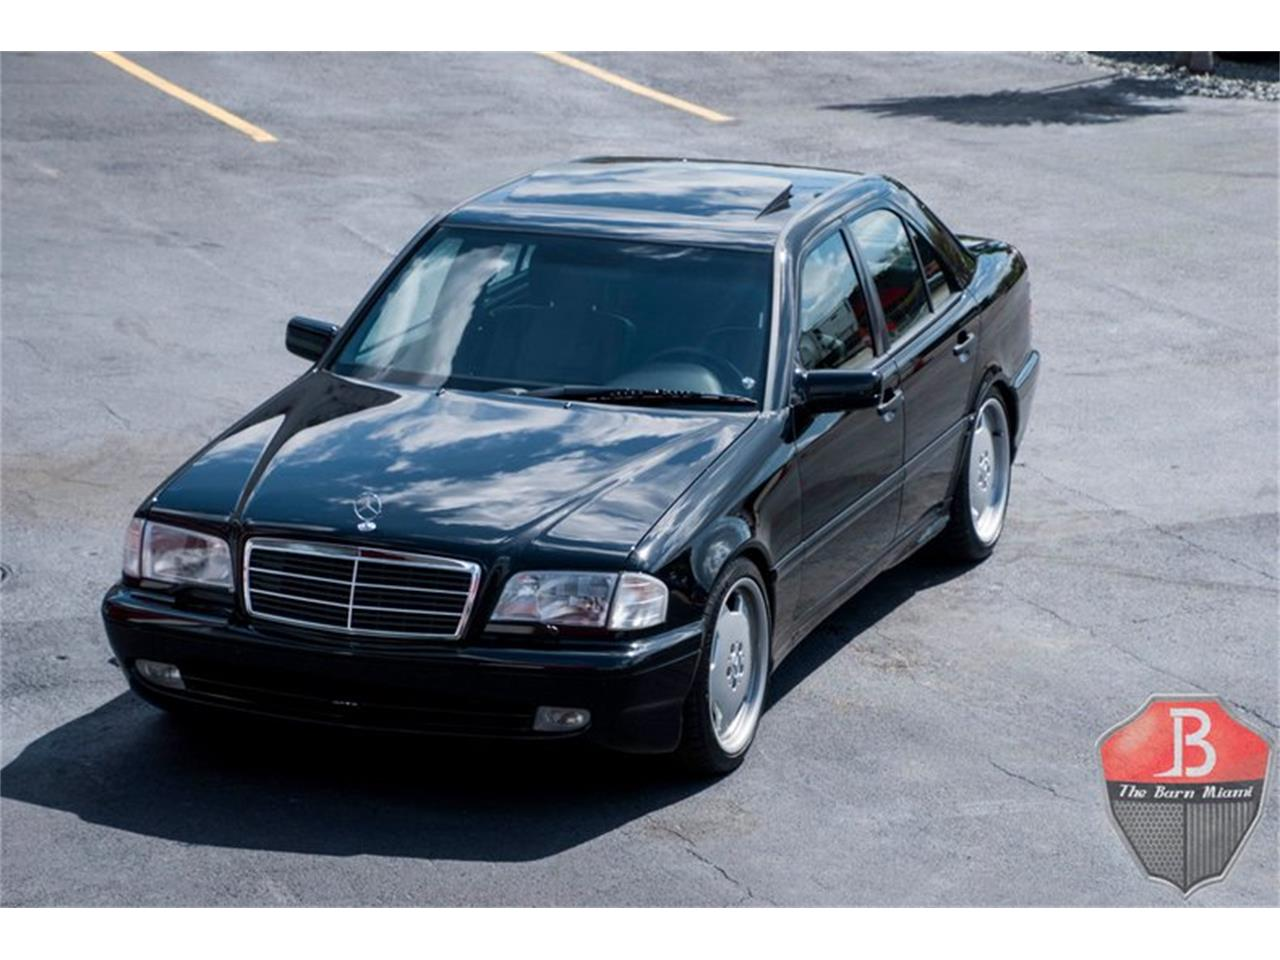 for sale 1998 mercedes-benz c-class in miami, florida cars - miami, fl at geebo